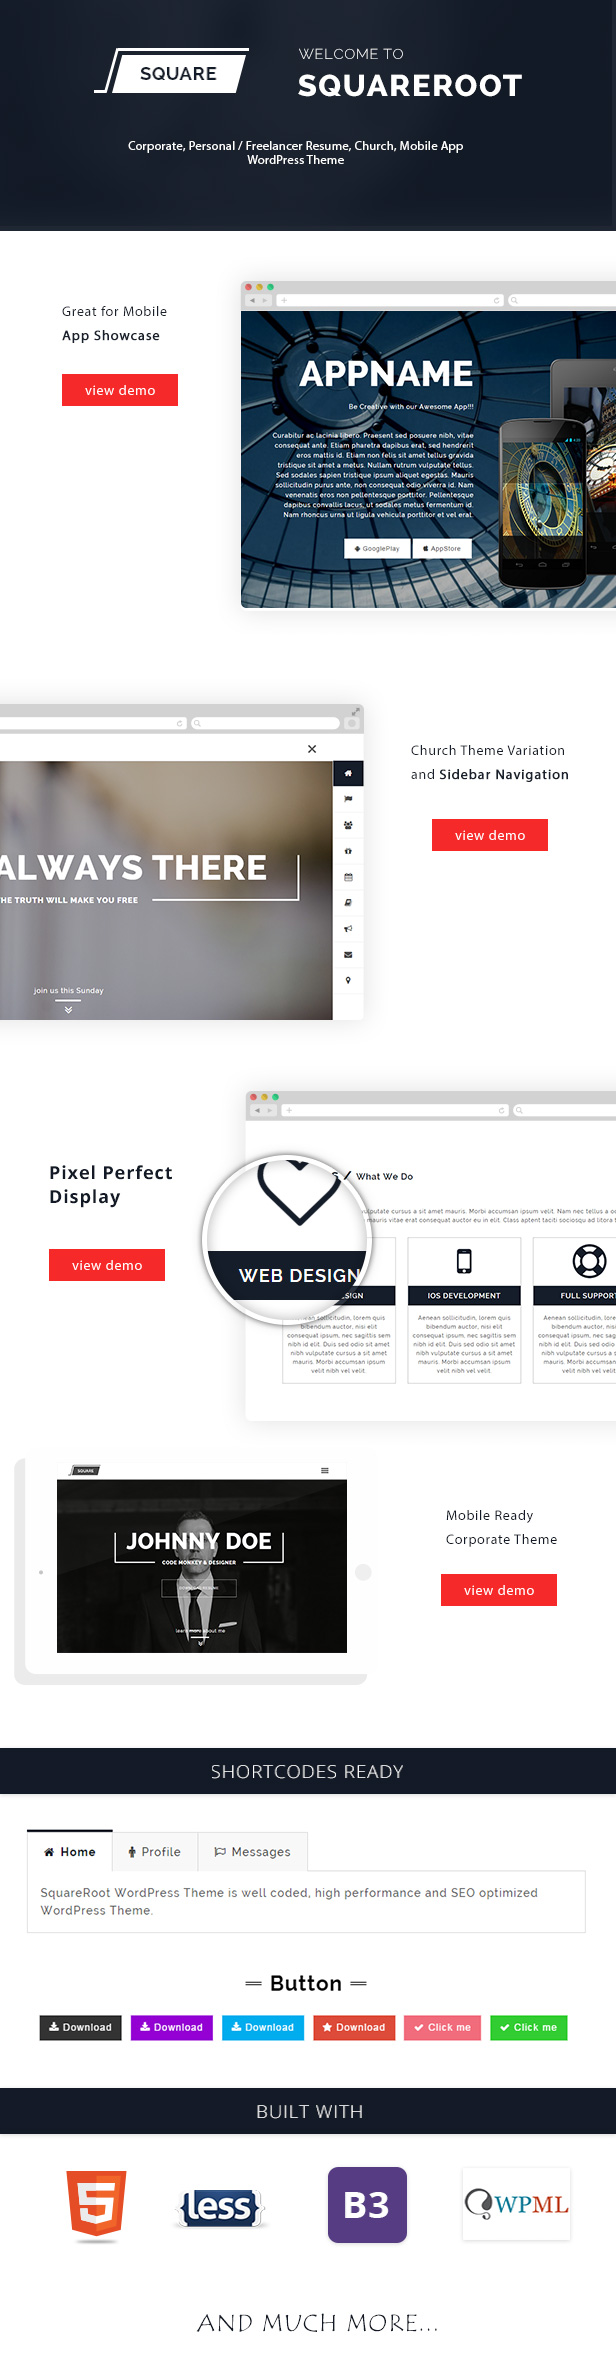 onepage wordpress resume theme for vcard cv personal resume